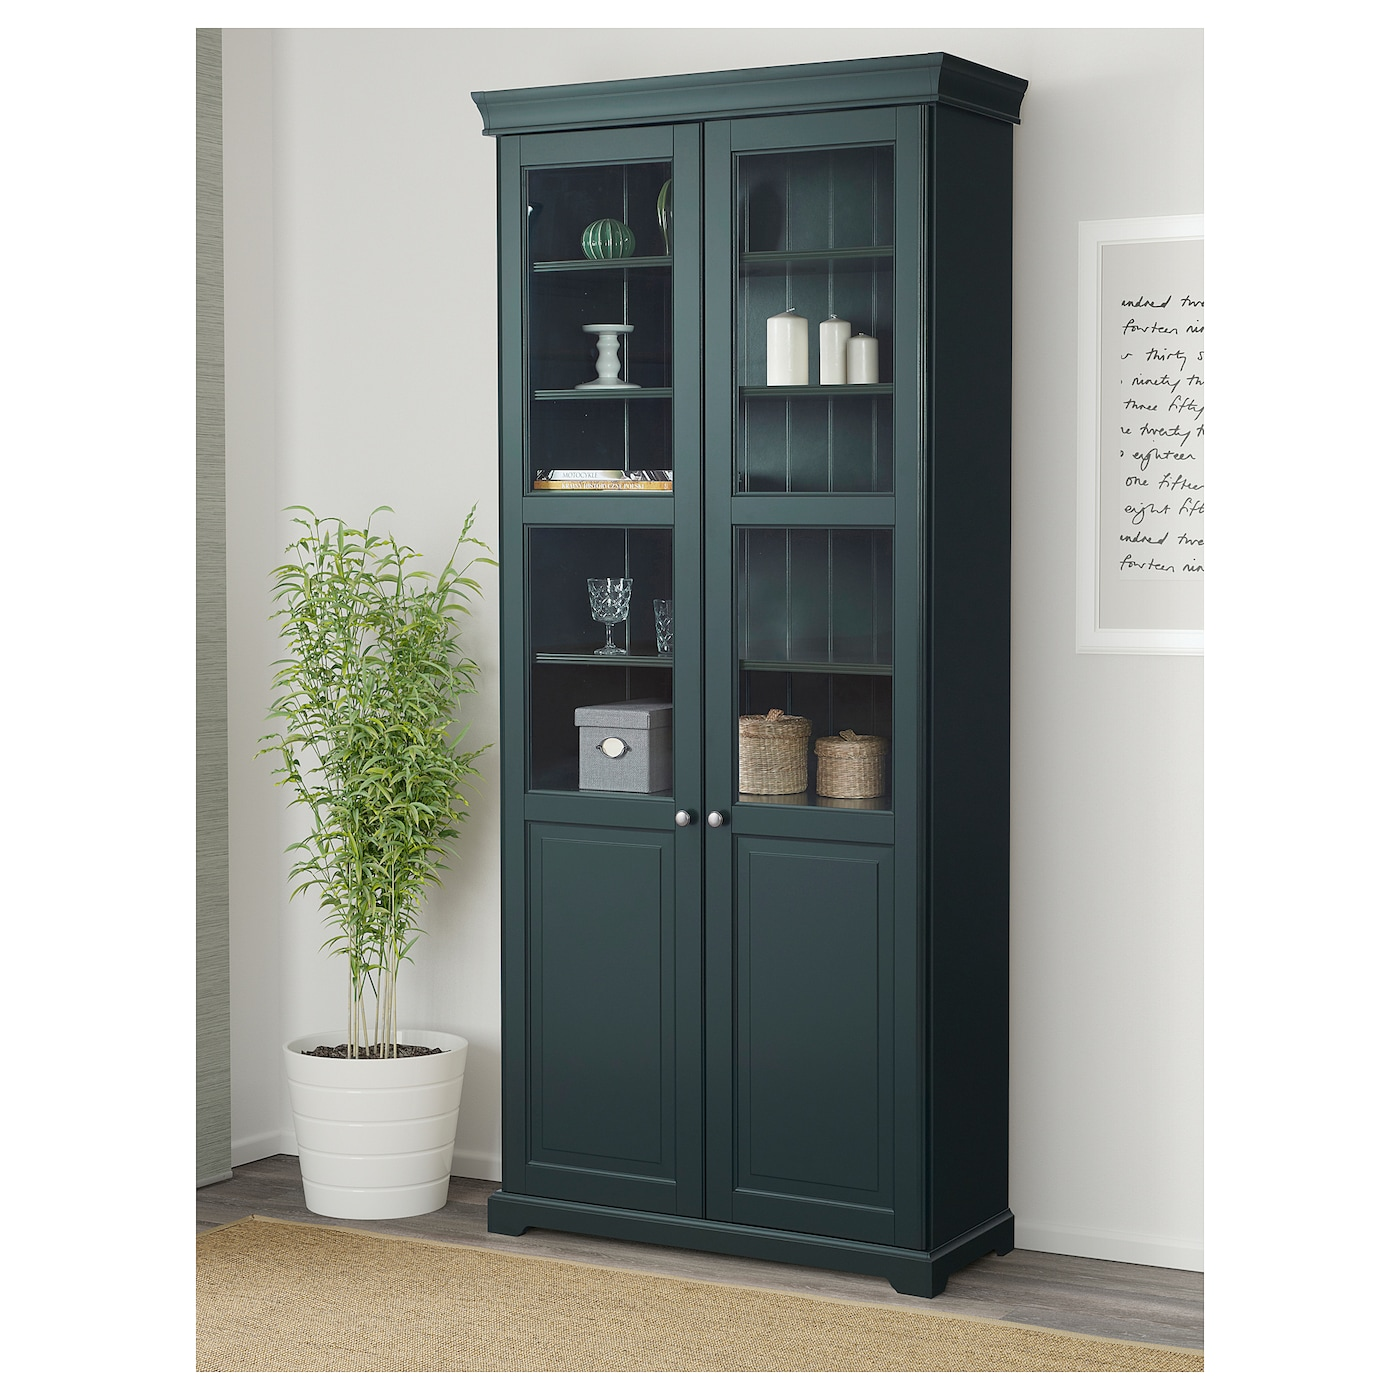 liatorp bookcase with glass doors dark olive green 96 x 214 cm ikea. Black Bedroom Furniture Sets. Home Design Ideas